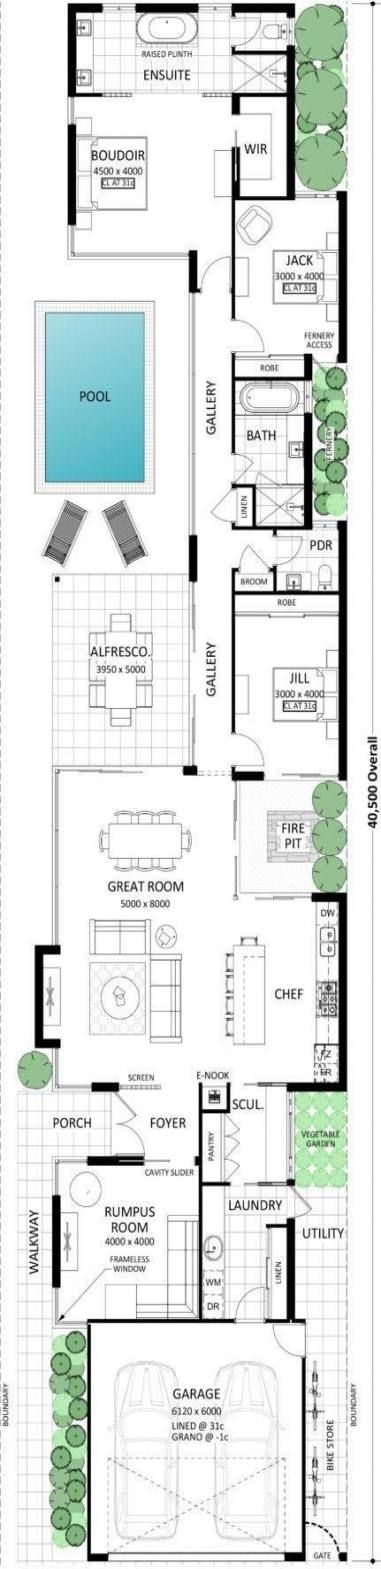 Super House Plans Ideas Pantries 26 Ideas Narrow House Plans Best House Plans Floor Plan Design